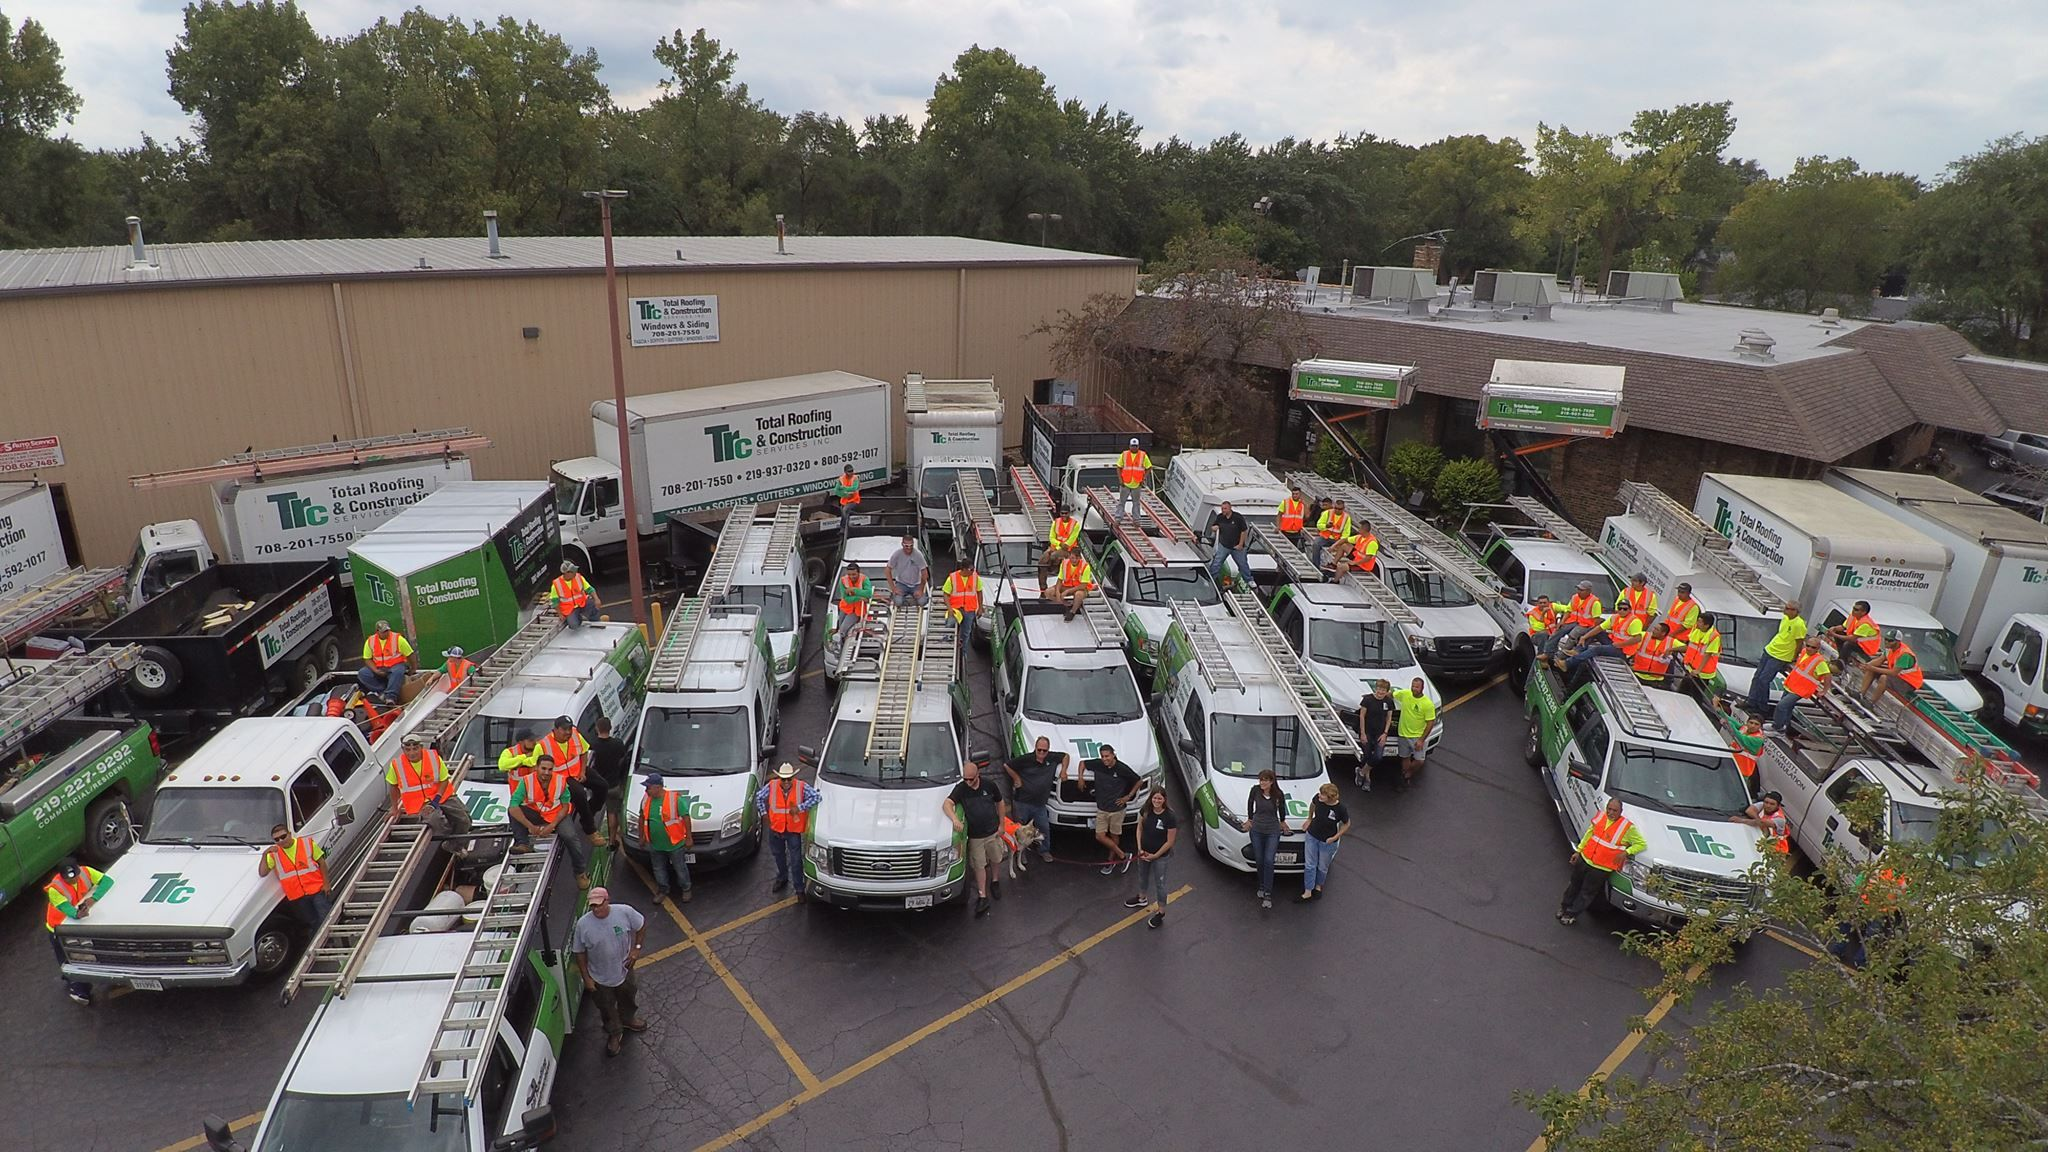 Team Total Taking A Team Photo In 2020 Residential Roofing Commercial Roofing Roofing